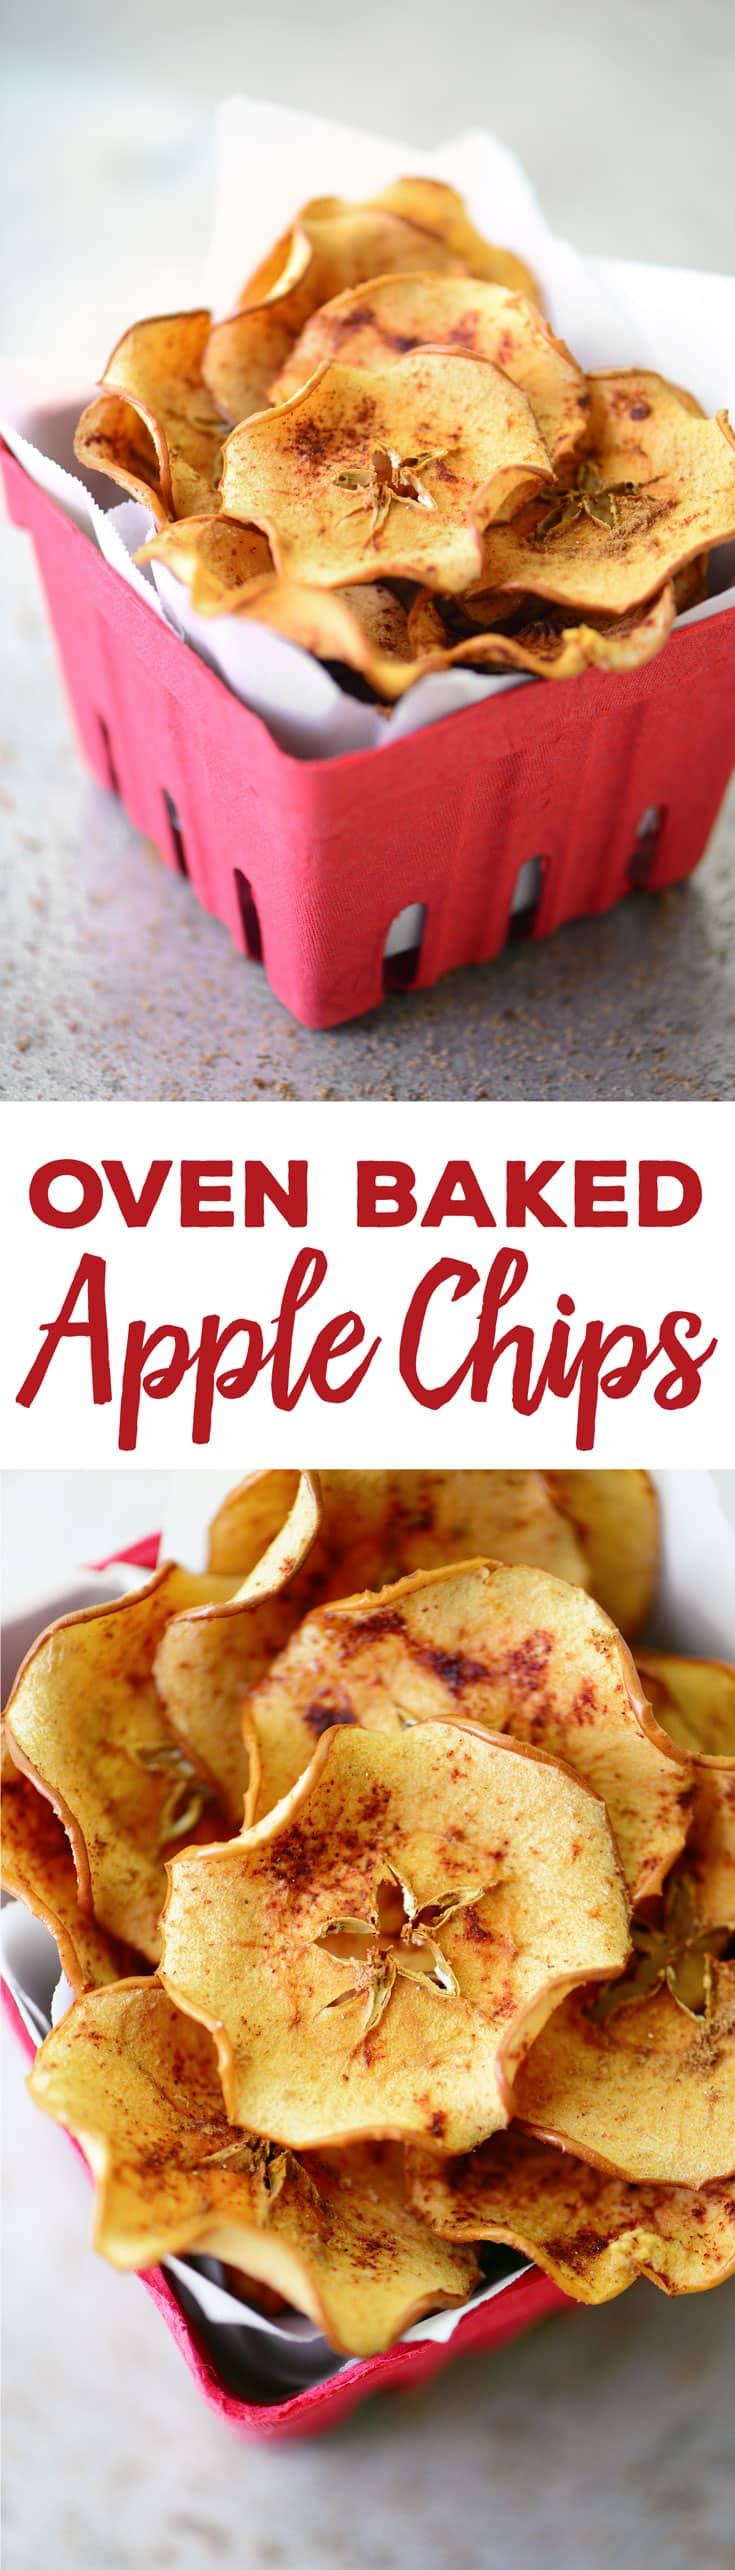 Baked Apple Chips are simple to make with only four ingredients. These crispy, crunchy snacks are perfect for when you are craving something sweet.